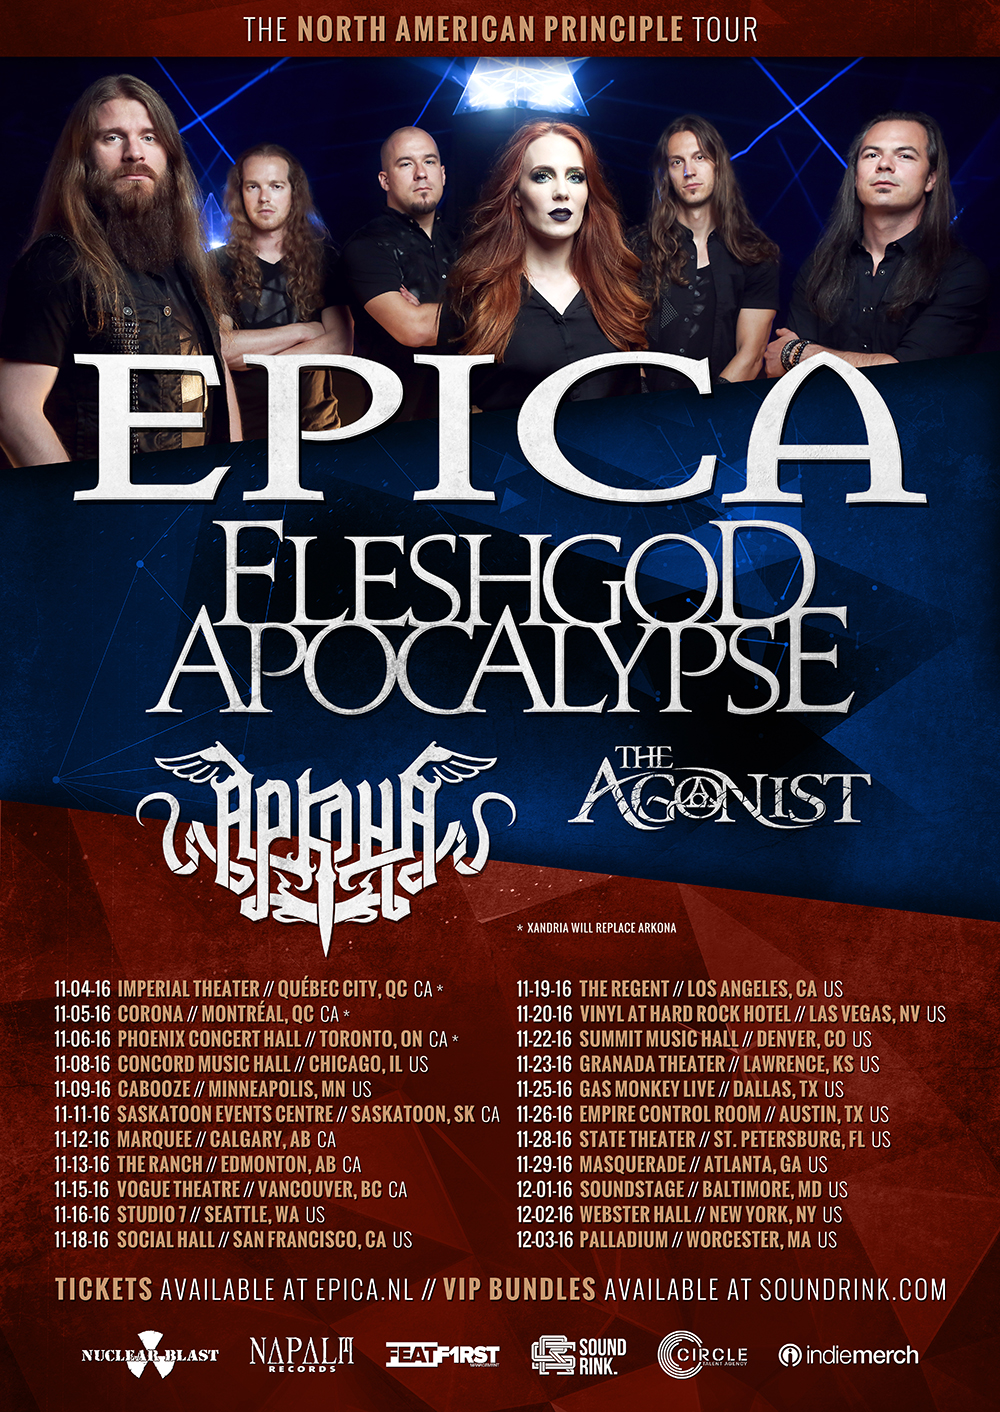 Epica Announce The North American Principle Tour With Fleshgod Apocalypse